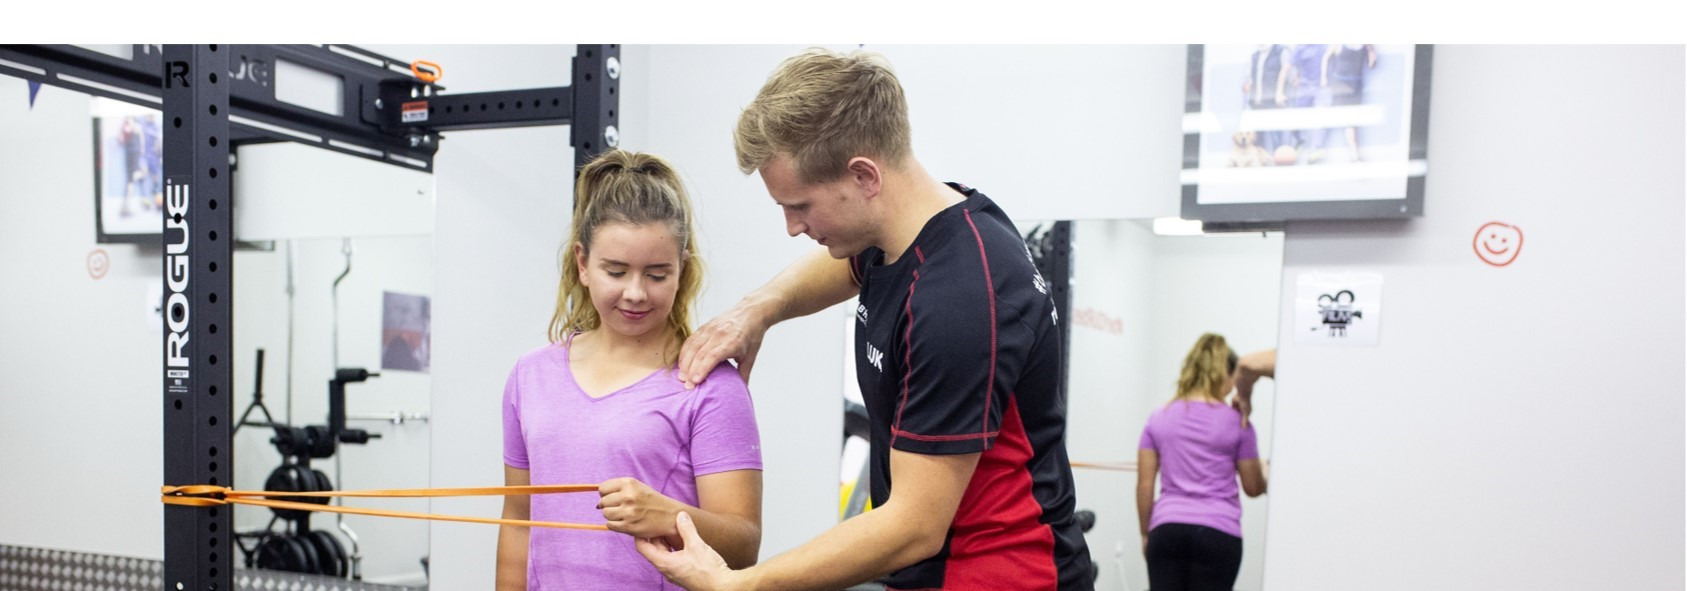 physiotherapist showing shoulder exercise for pain